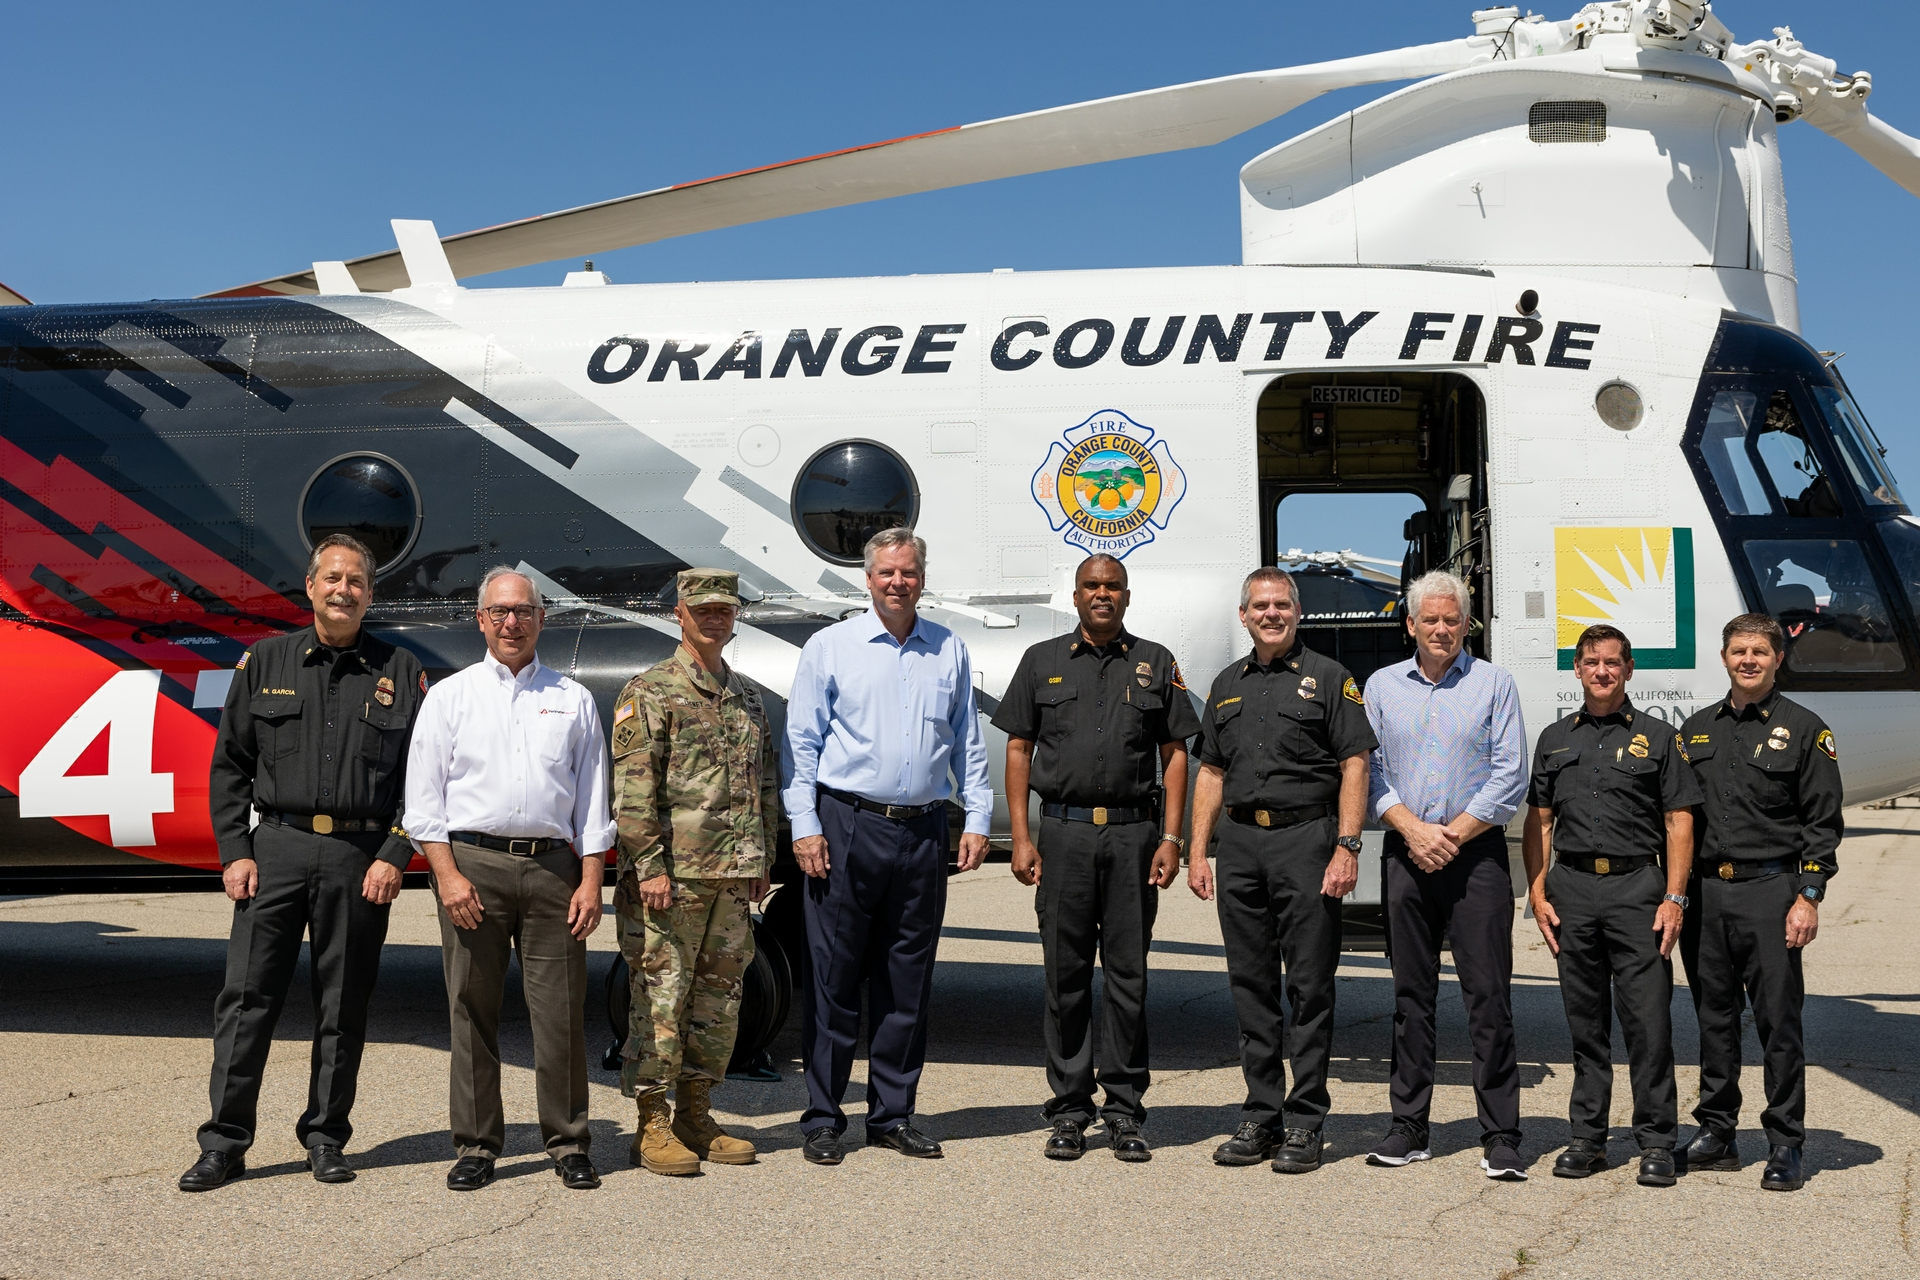 OCFA, LA County Fire Department, Ventura County Fire Department and SCE recently held an event at Joint Forces Training Base in Los Alamitos to debut the aircraft fleet